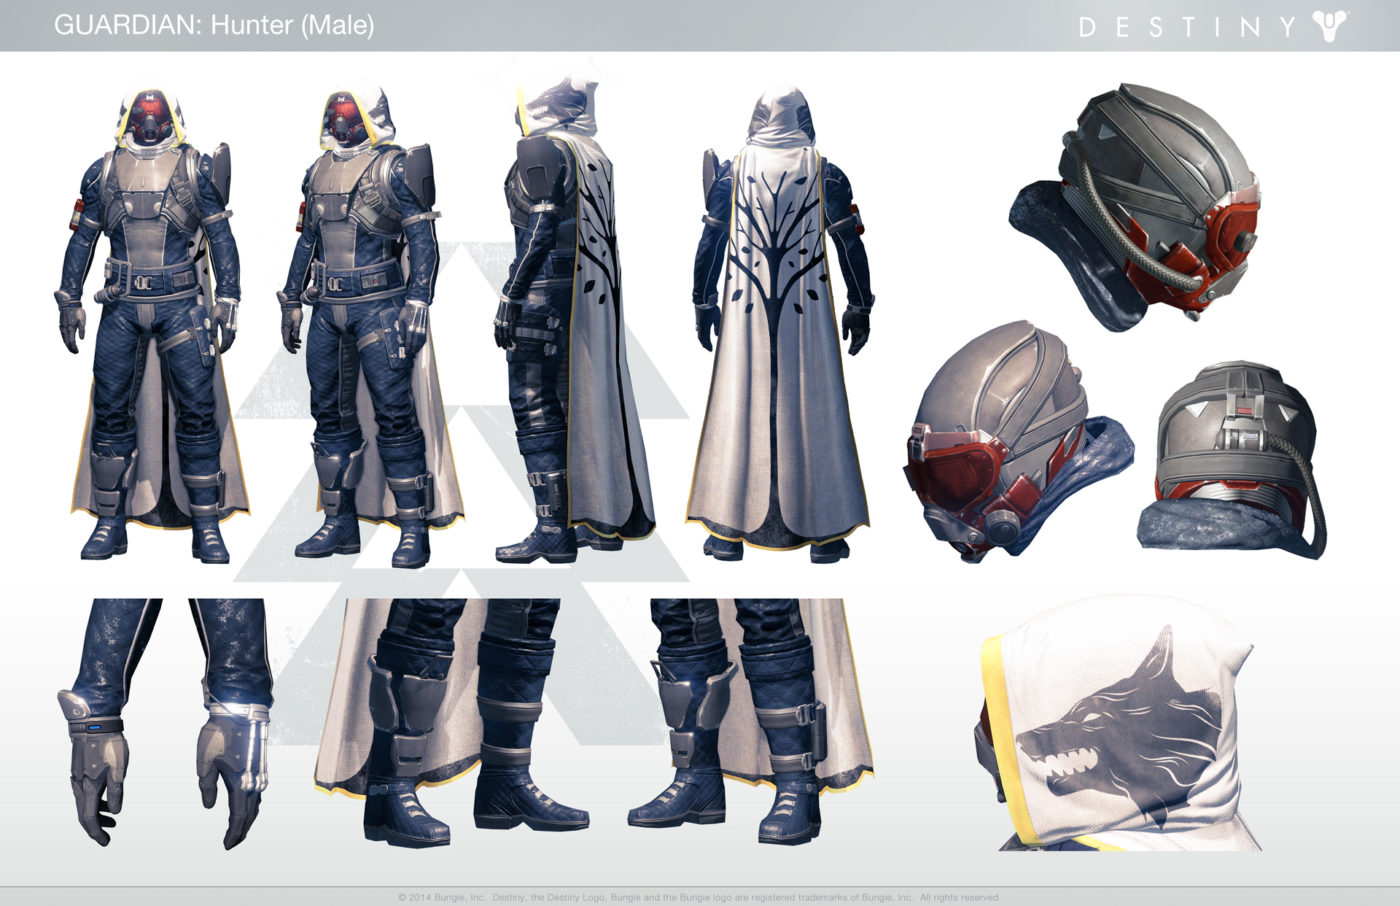 Destiny Hunter Costume Dress Up As Your Favorite Guardian With This